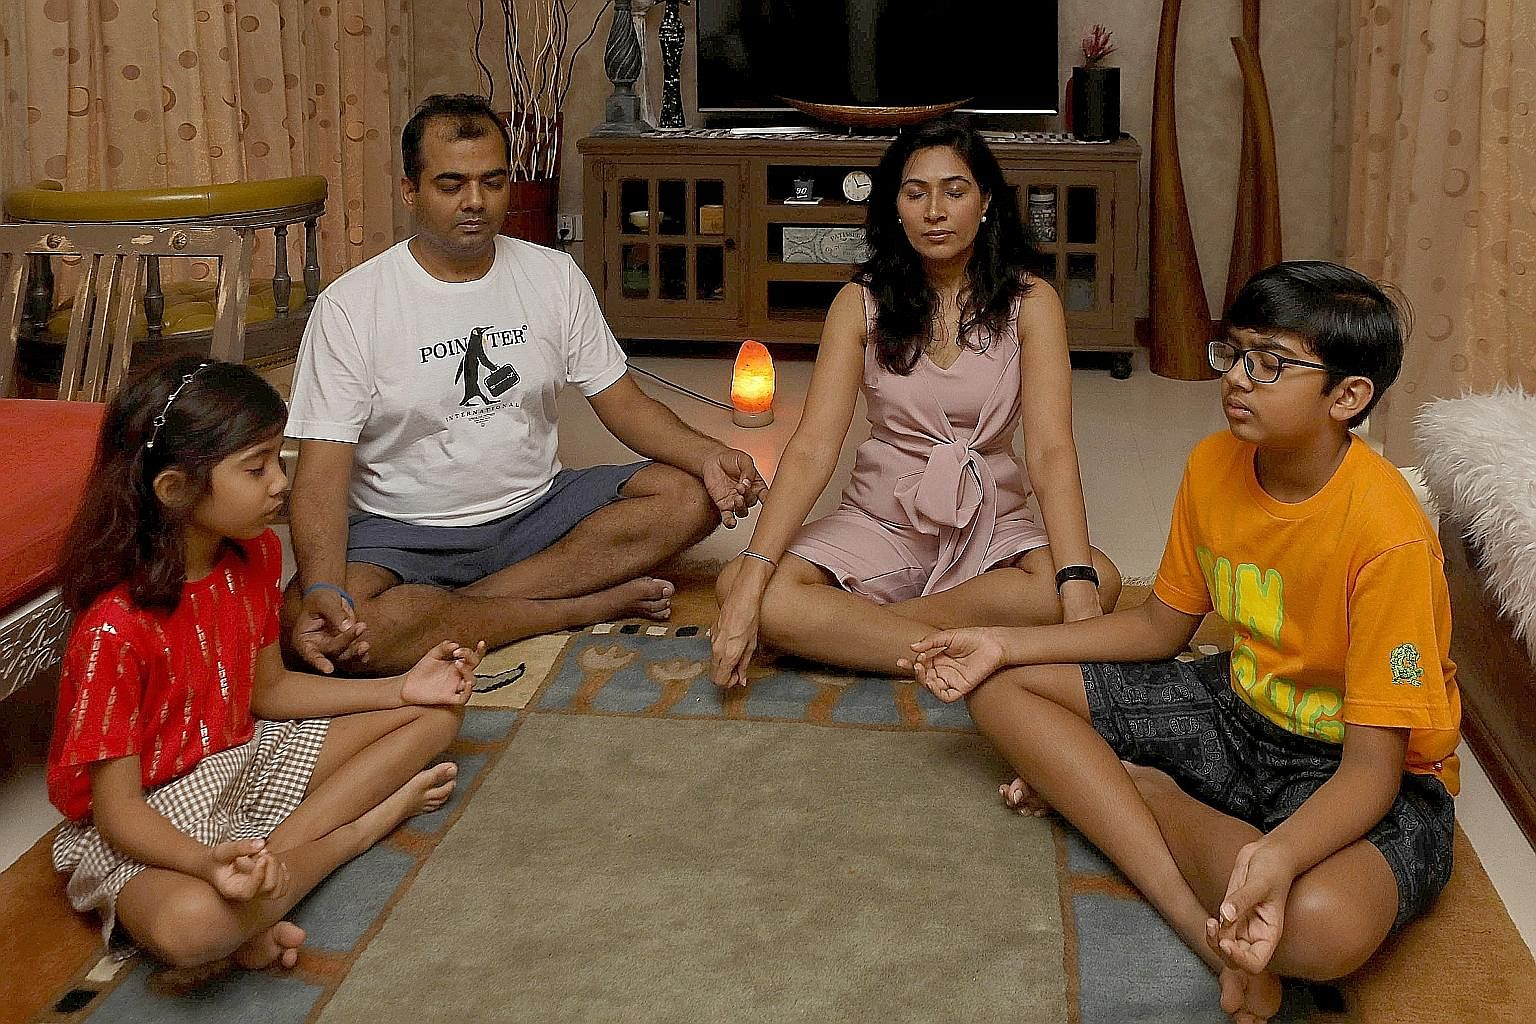 The circuit breaker was a stressful time for Mr Nikhil Gupta, his wife Pooja Kawatra and their children Aayan and Kaira, so he suggested the whole family take up meditation to destress.